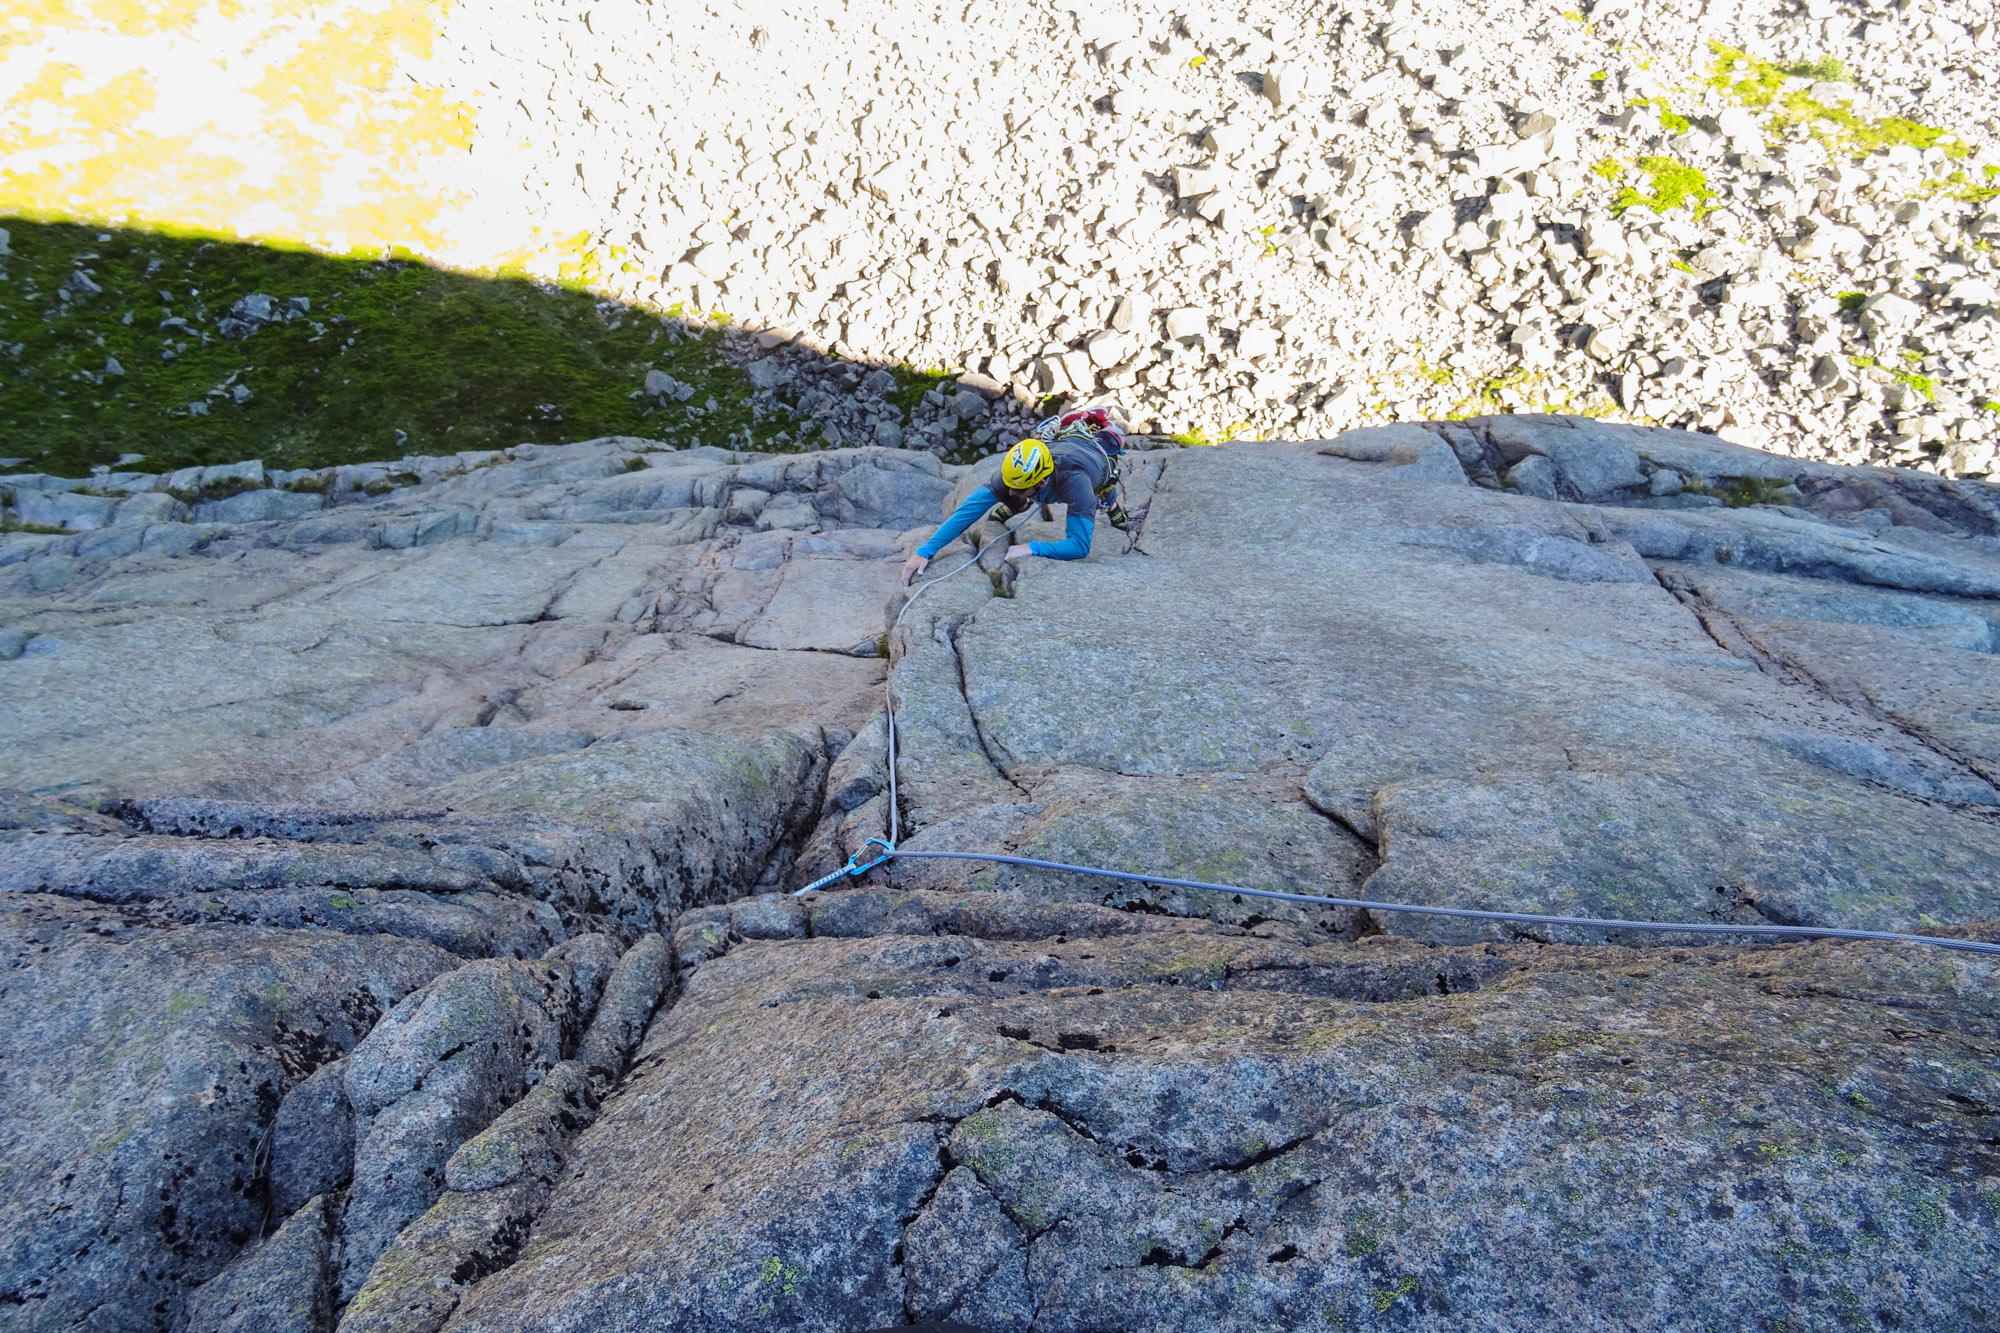 Immaculate rock and great exposure at the top of pitch 4. Awkward flared cracks providing the entertainment. Photo credit: Callum Johnson